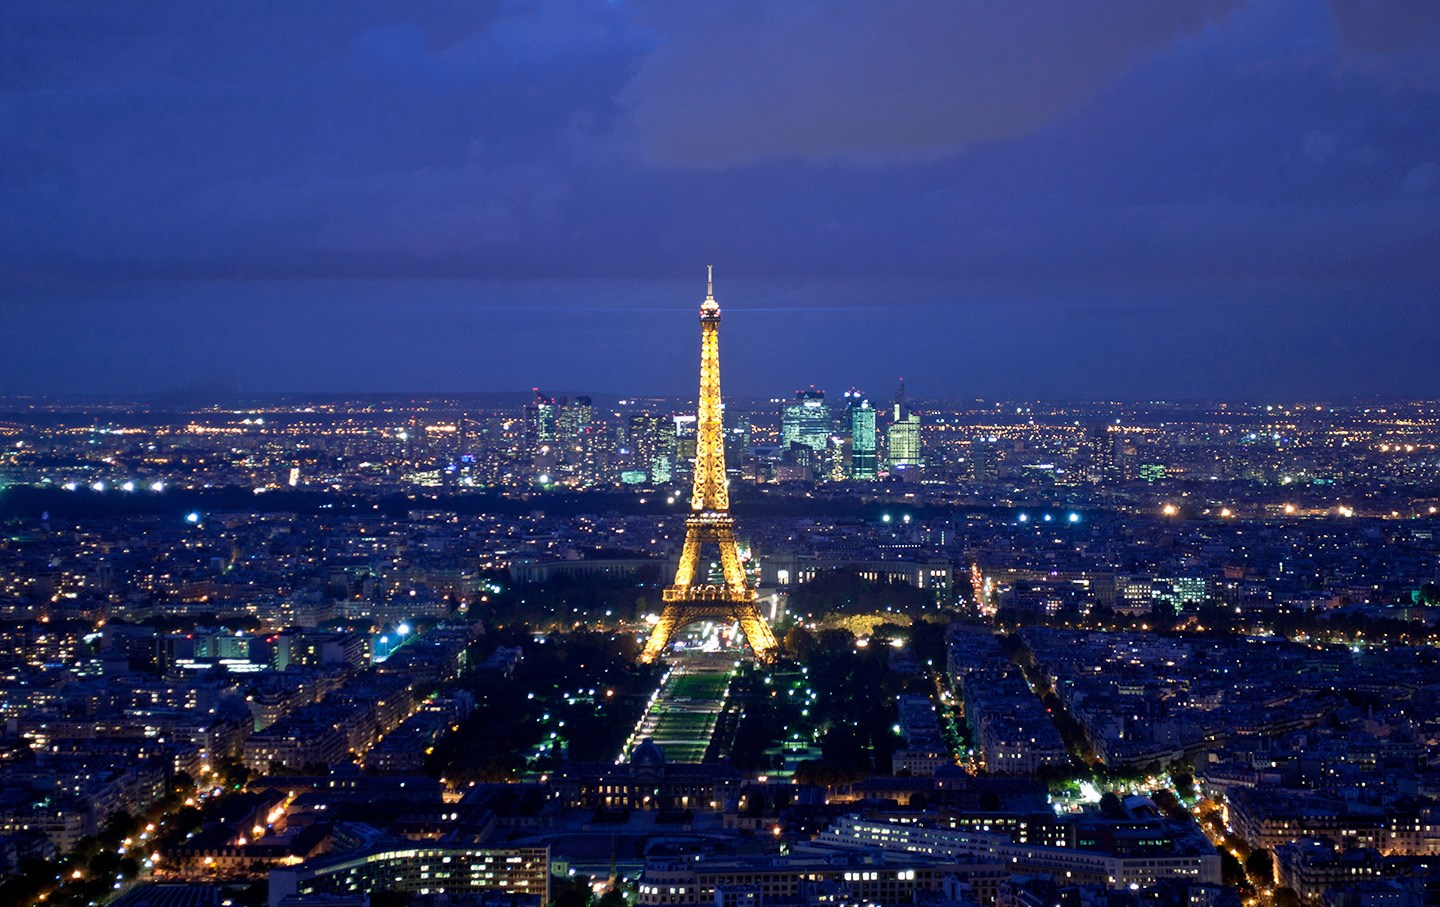 View of the Eiffel Tower from the top of the Montparnasse Tower, Paris